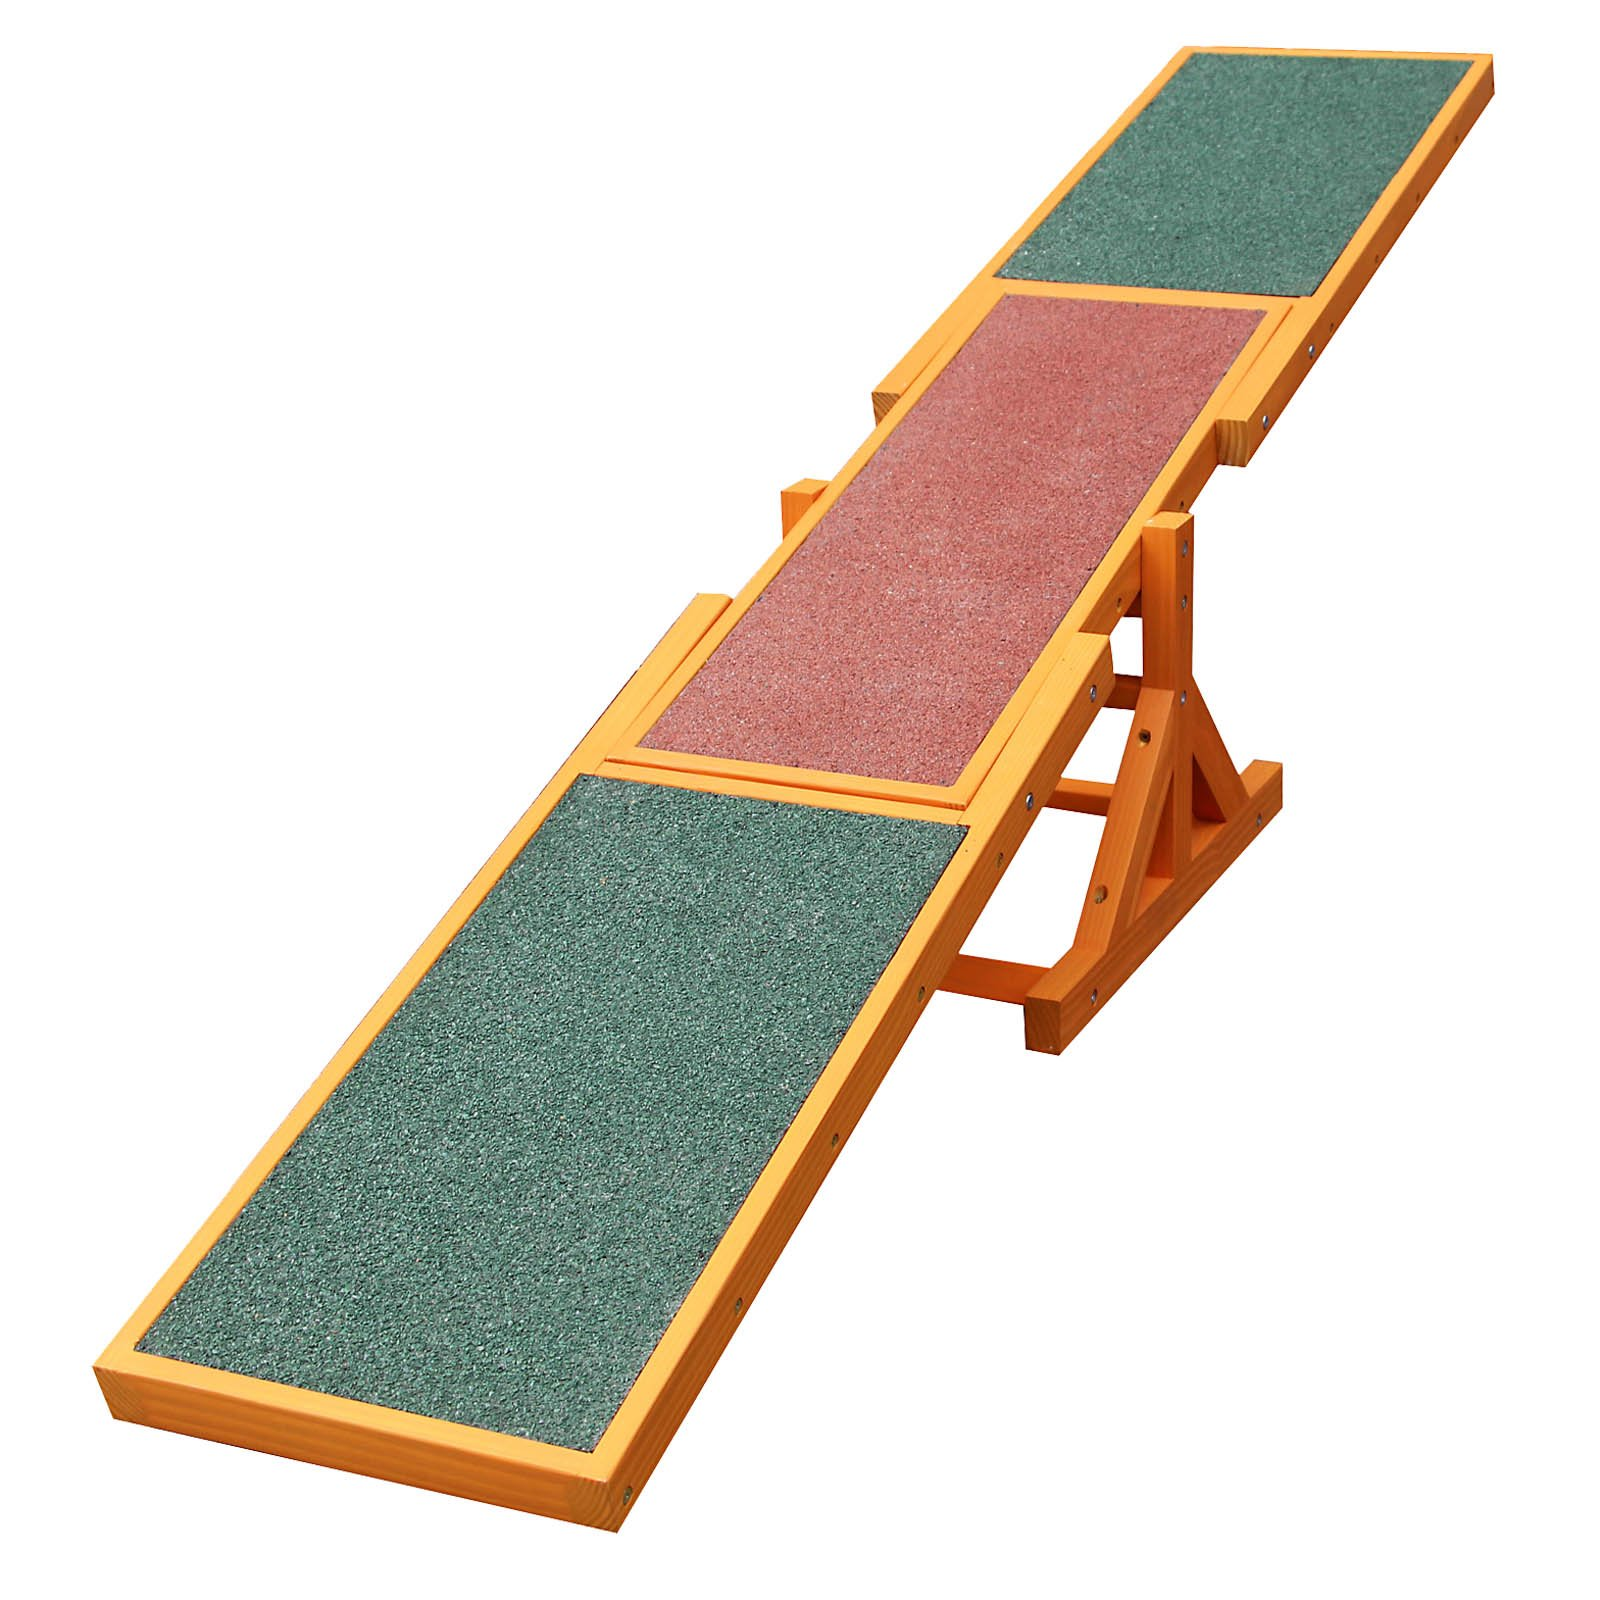 WilTec Dog Pet Seesaw Agility Training Equipment Exercise Toy Puppet Play Supllies